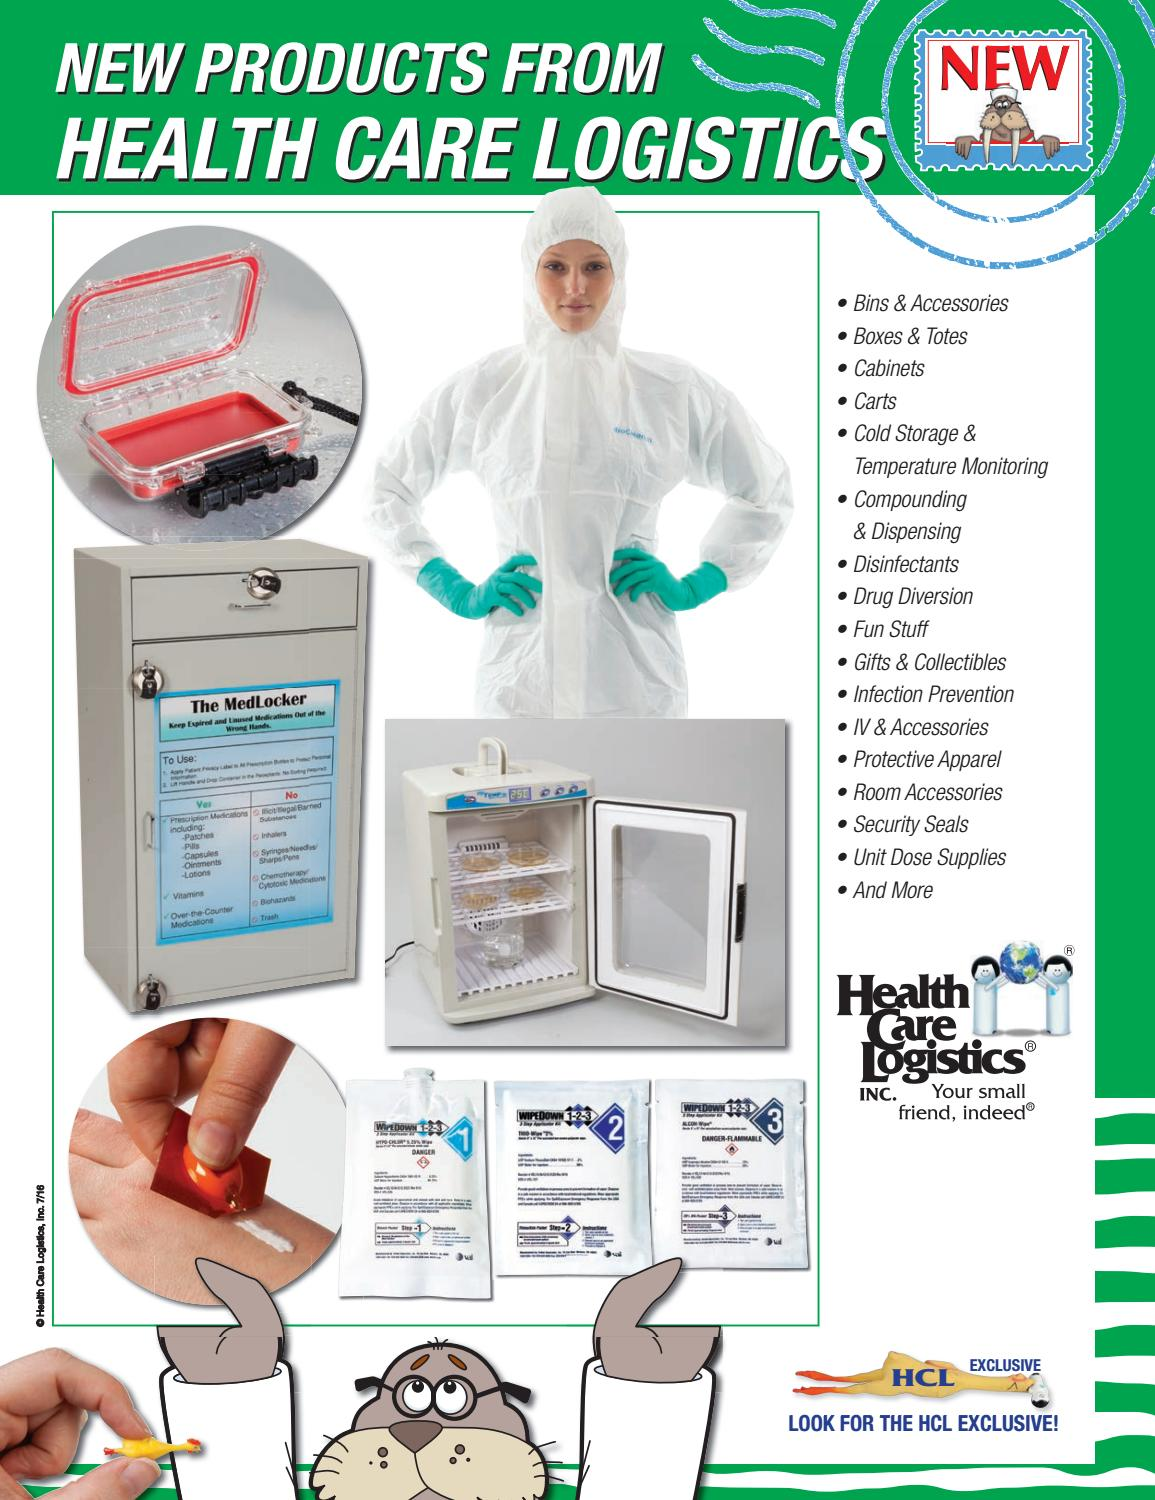 New Products by Health Care Logistics